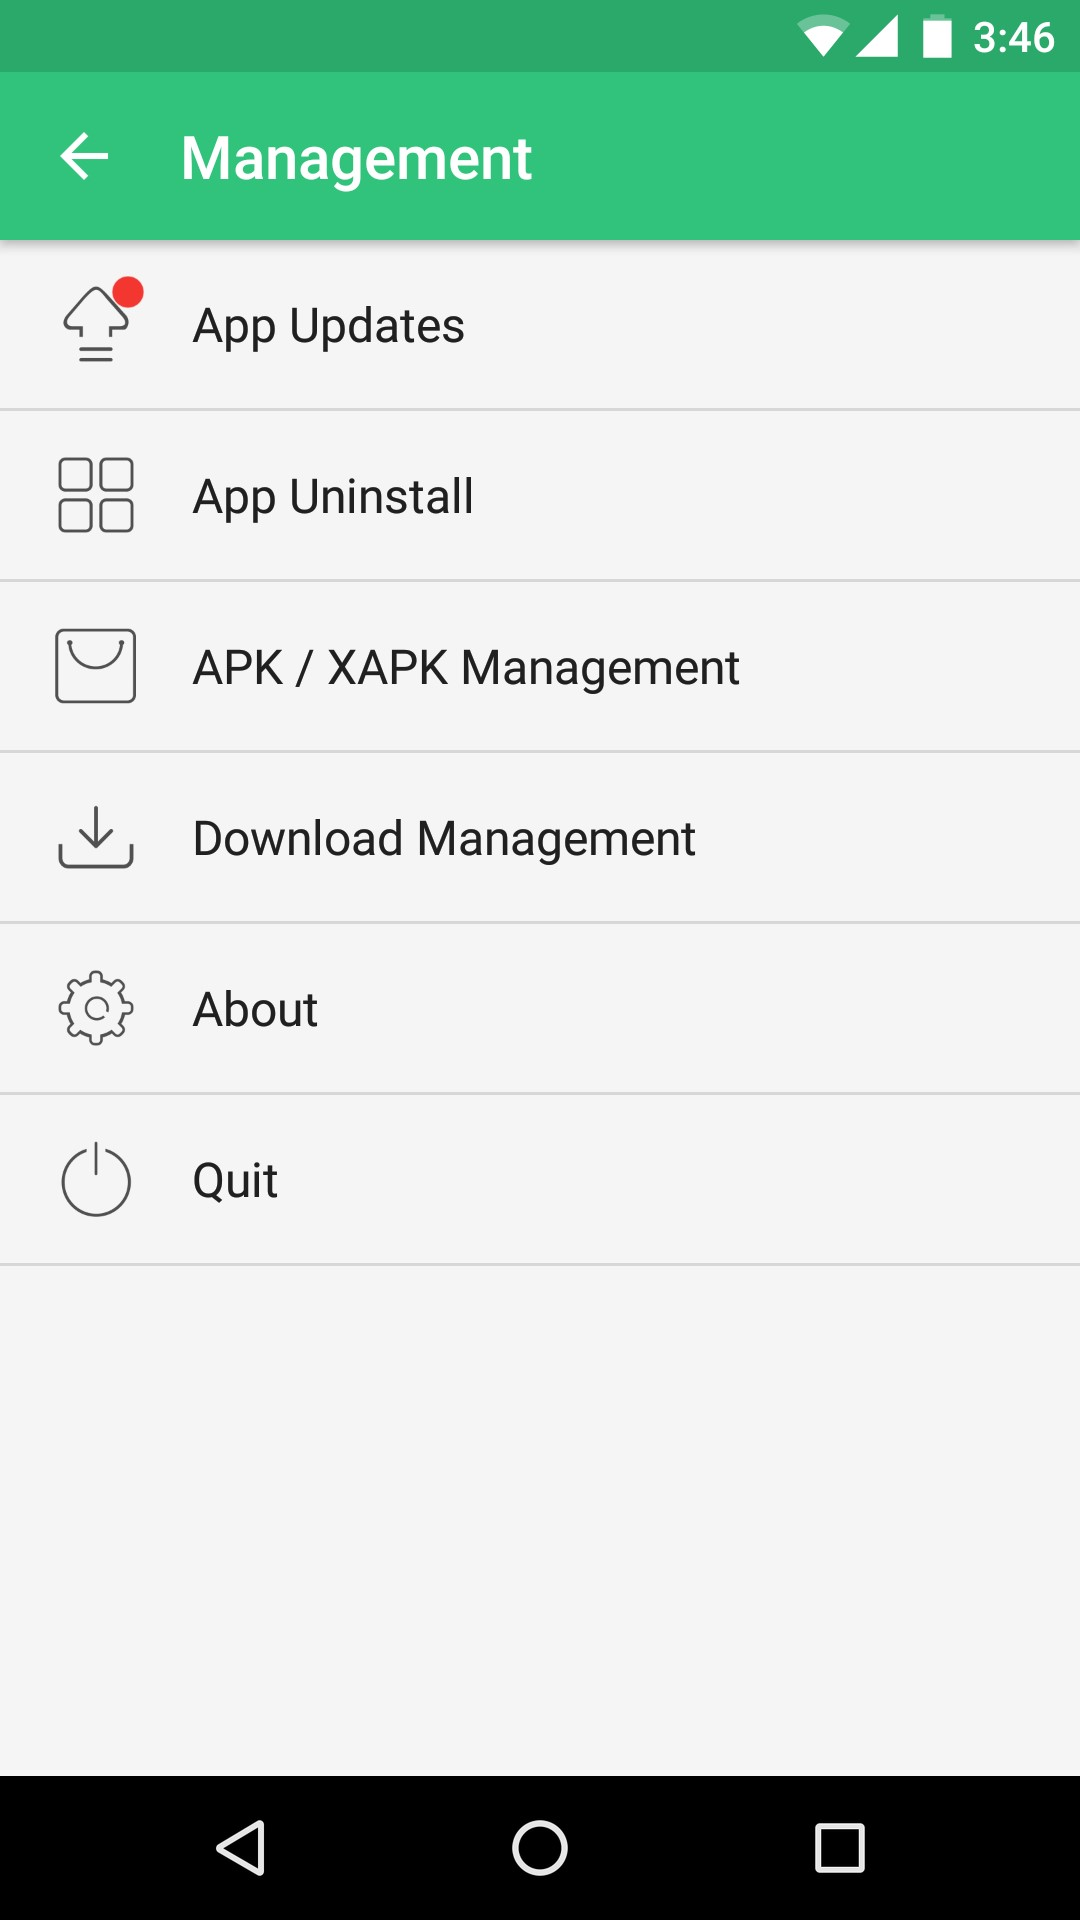 Apk pure alternatives and similar software alternativeto its possible to update the information on apk pure or report it as discontinued duplicated or spam stopboris Image collections